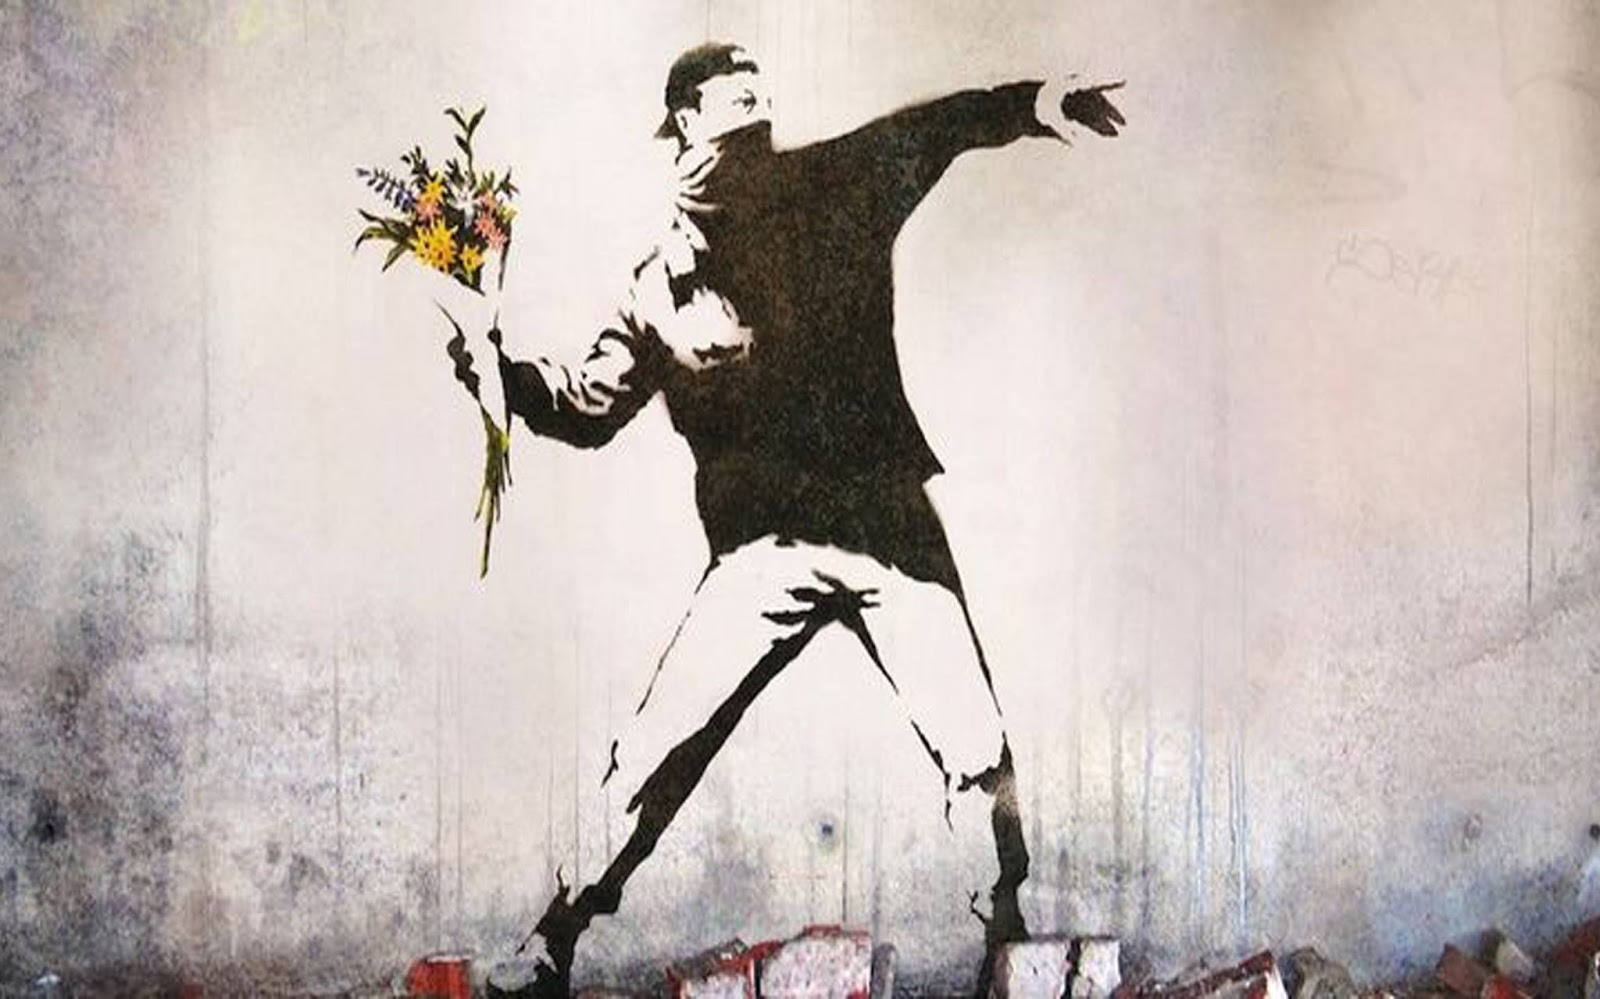 Banksy Says That He Was Ispired By 3D A Graffiti Artist Who Later Became A Founding Member Of Massive Attack An English Musical Group